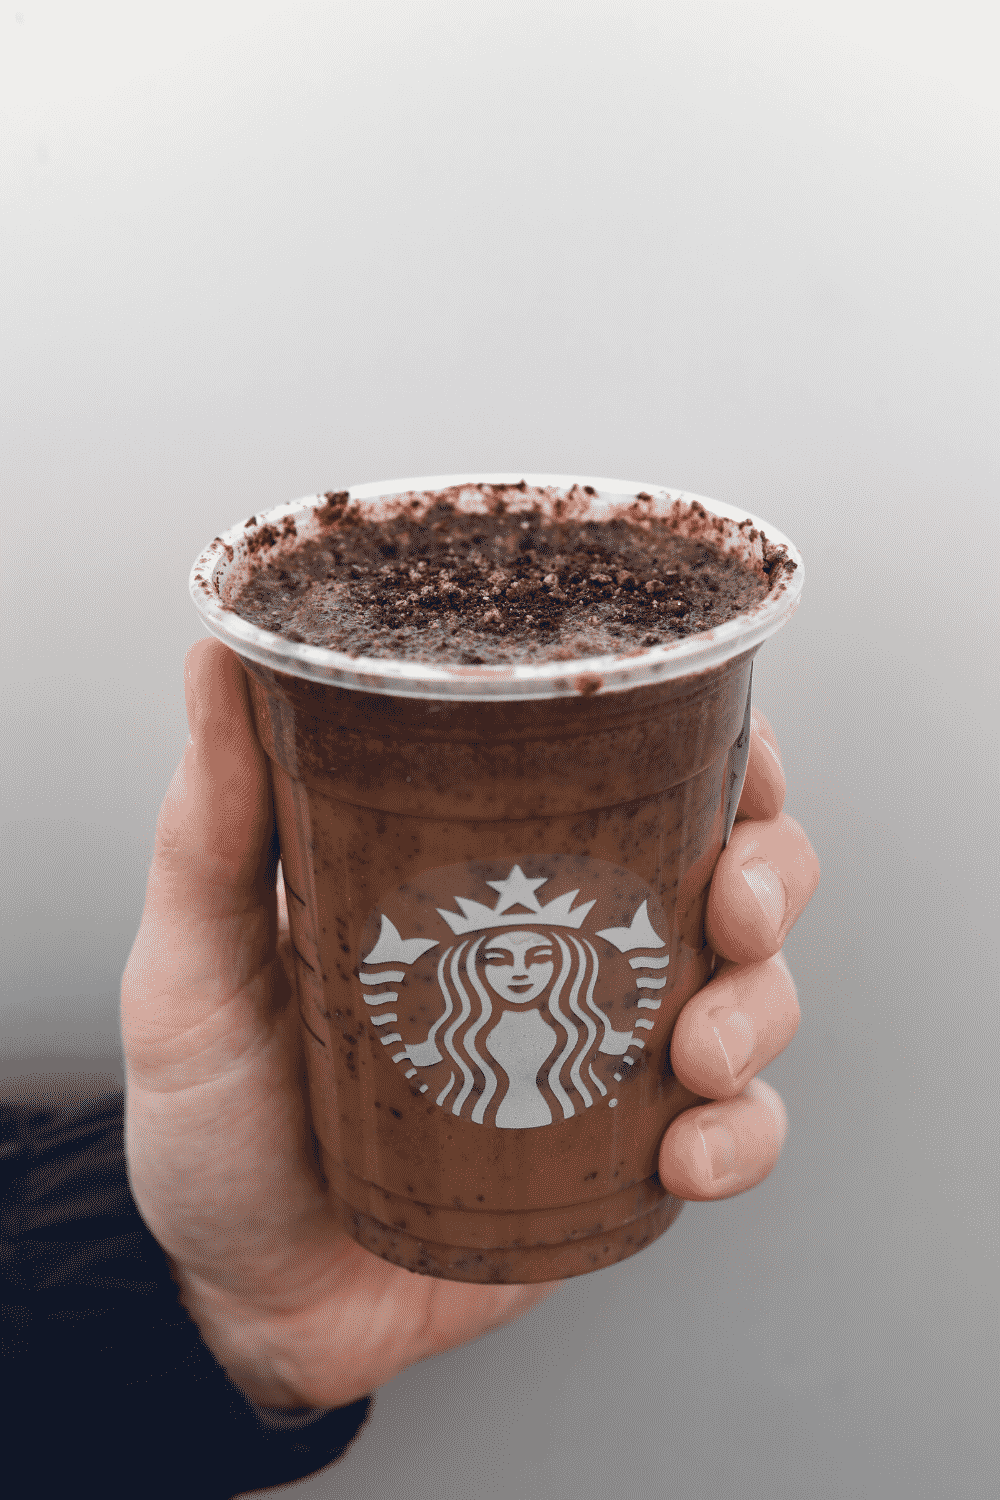 A hand holding a cup of Starbucks vegan mocha cookie crumble Frappuccino.